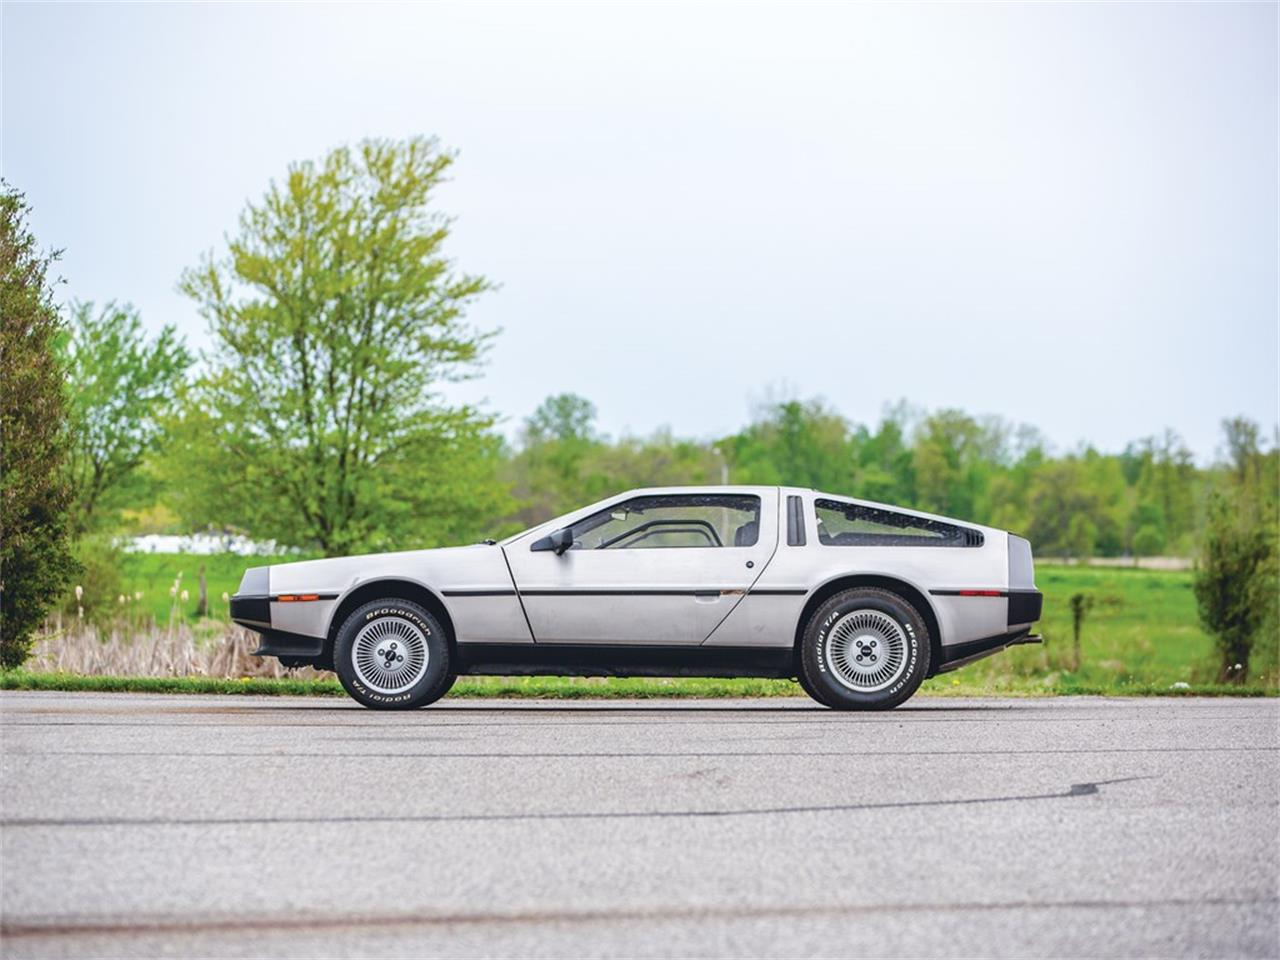 Large Picture of 1981 DMC-12 located in Auburn Indiana Auction Vehicle - Q55A